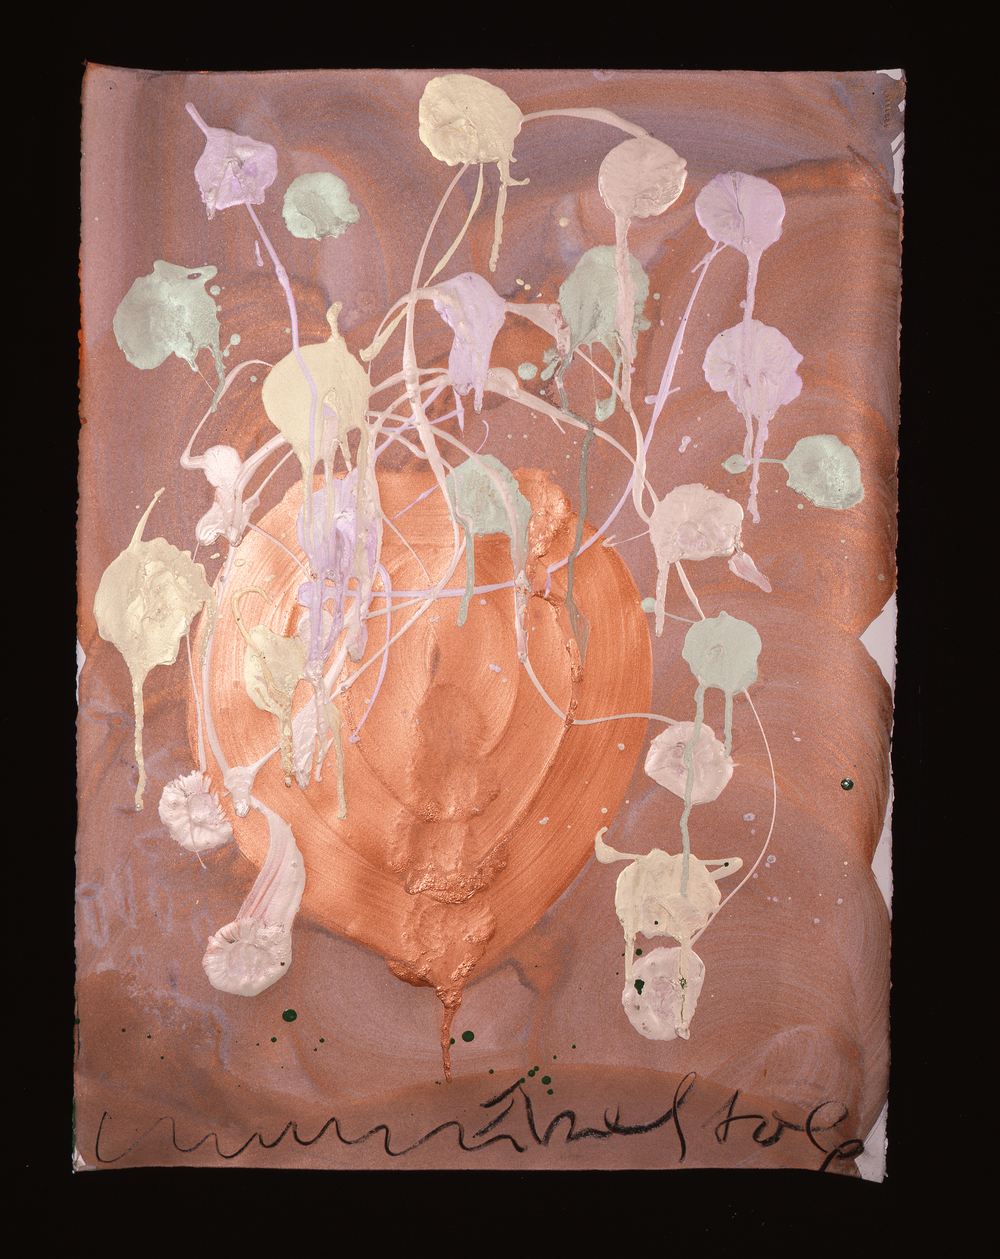 Dale Chihuly,  Ebeltoft Drawing,  (1991, mixed media on paper, 30 x 22 inches),DC.370